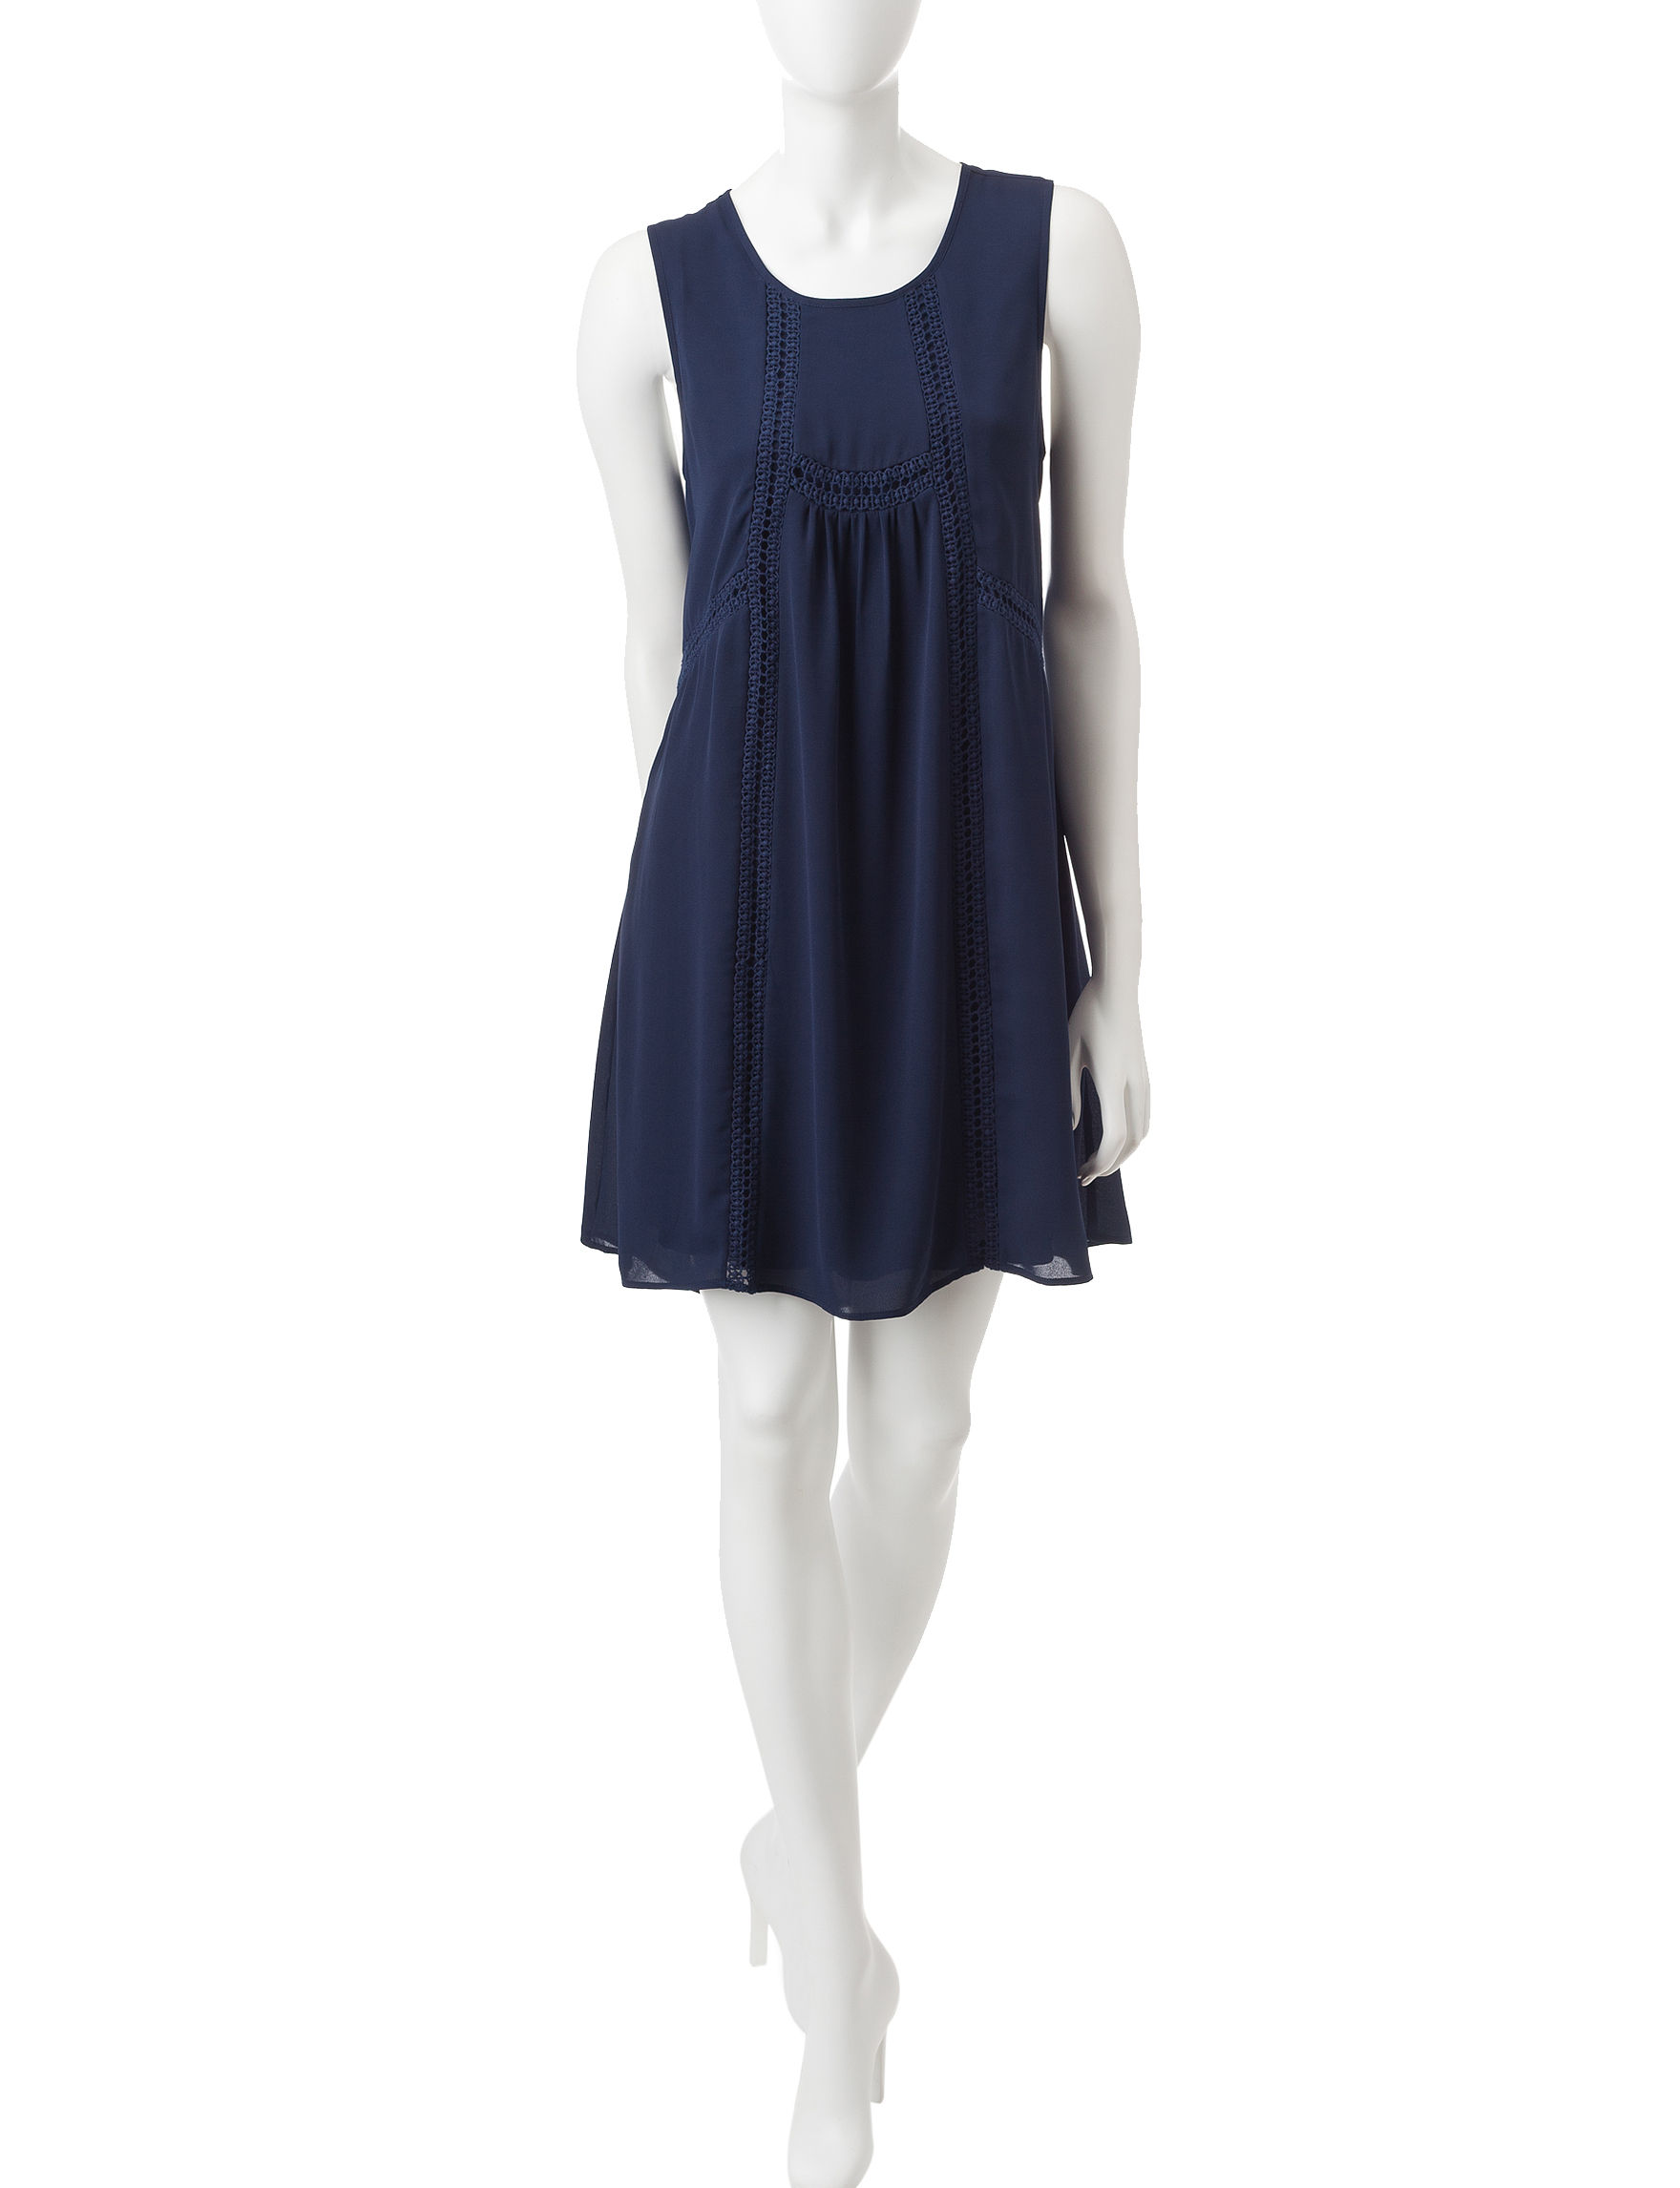 Signature Studio Indigo Everyday & Casual Shift Dresses